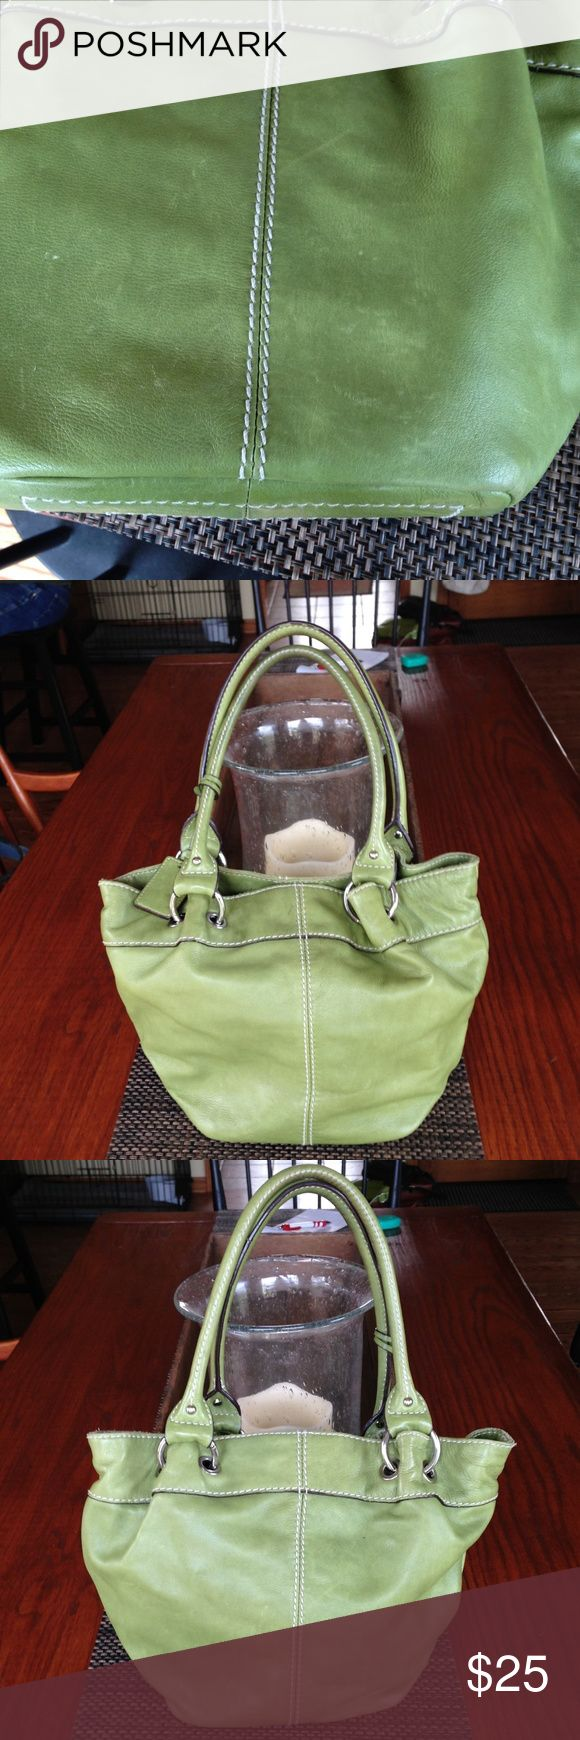 Tignanello Handbag Medium size Tignanello handbag in apple green. Very cute. Well loved but not abused. Tignanello Bags Satchels